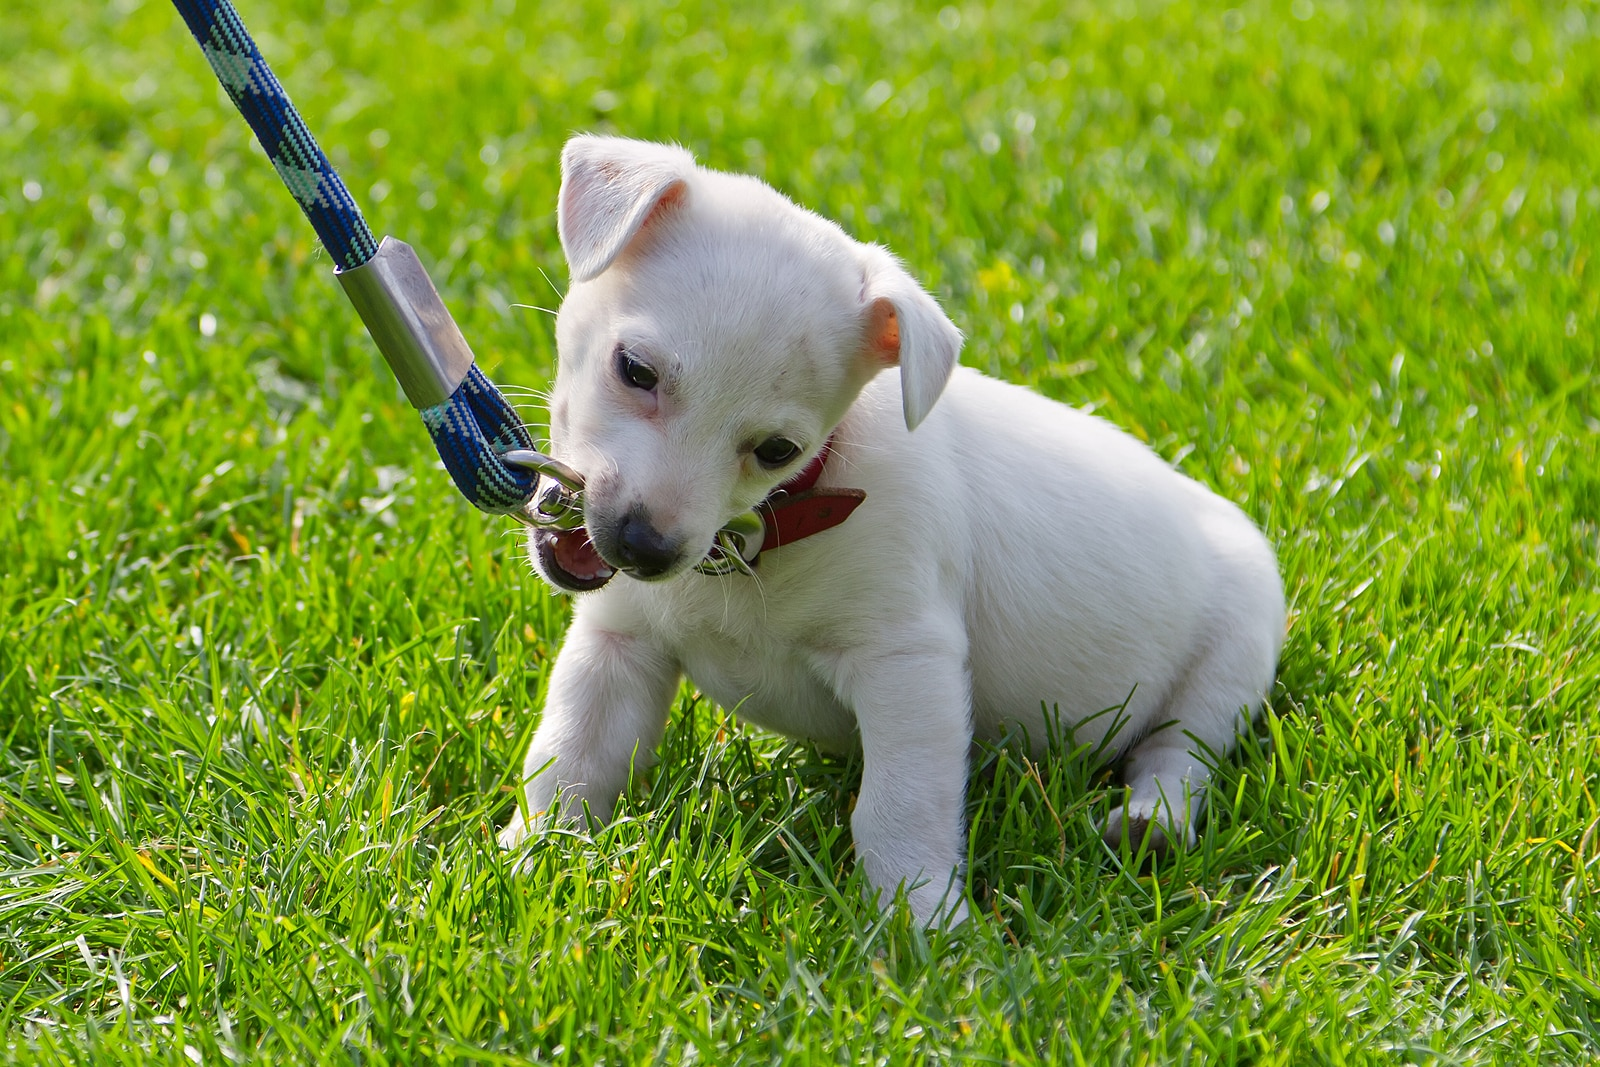 Little white puppy chews on a leash while sitting in the grass.